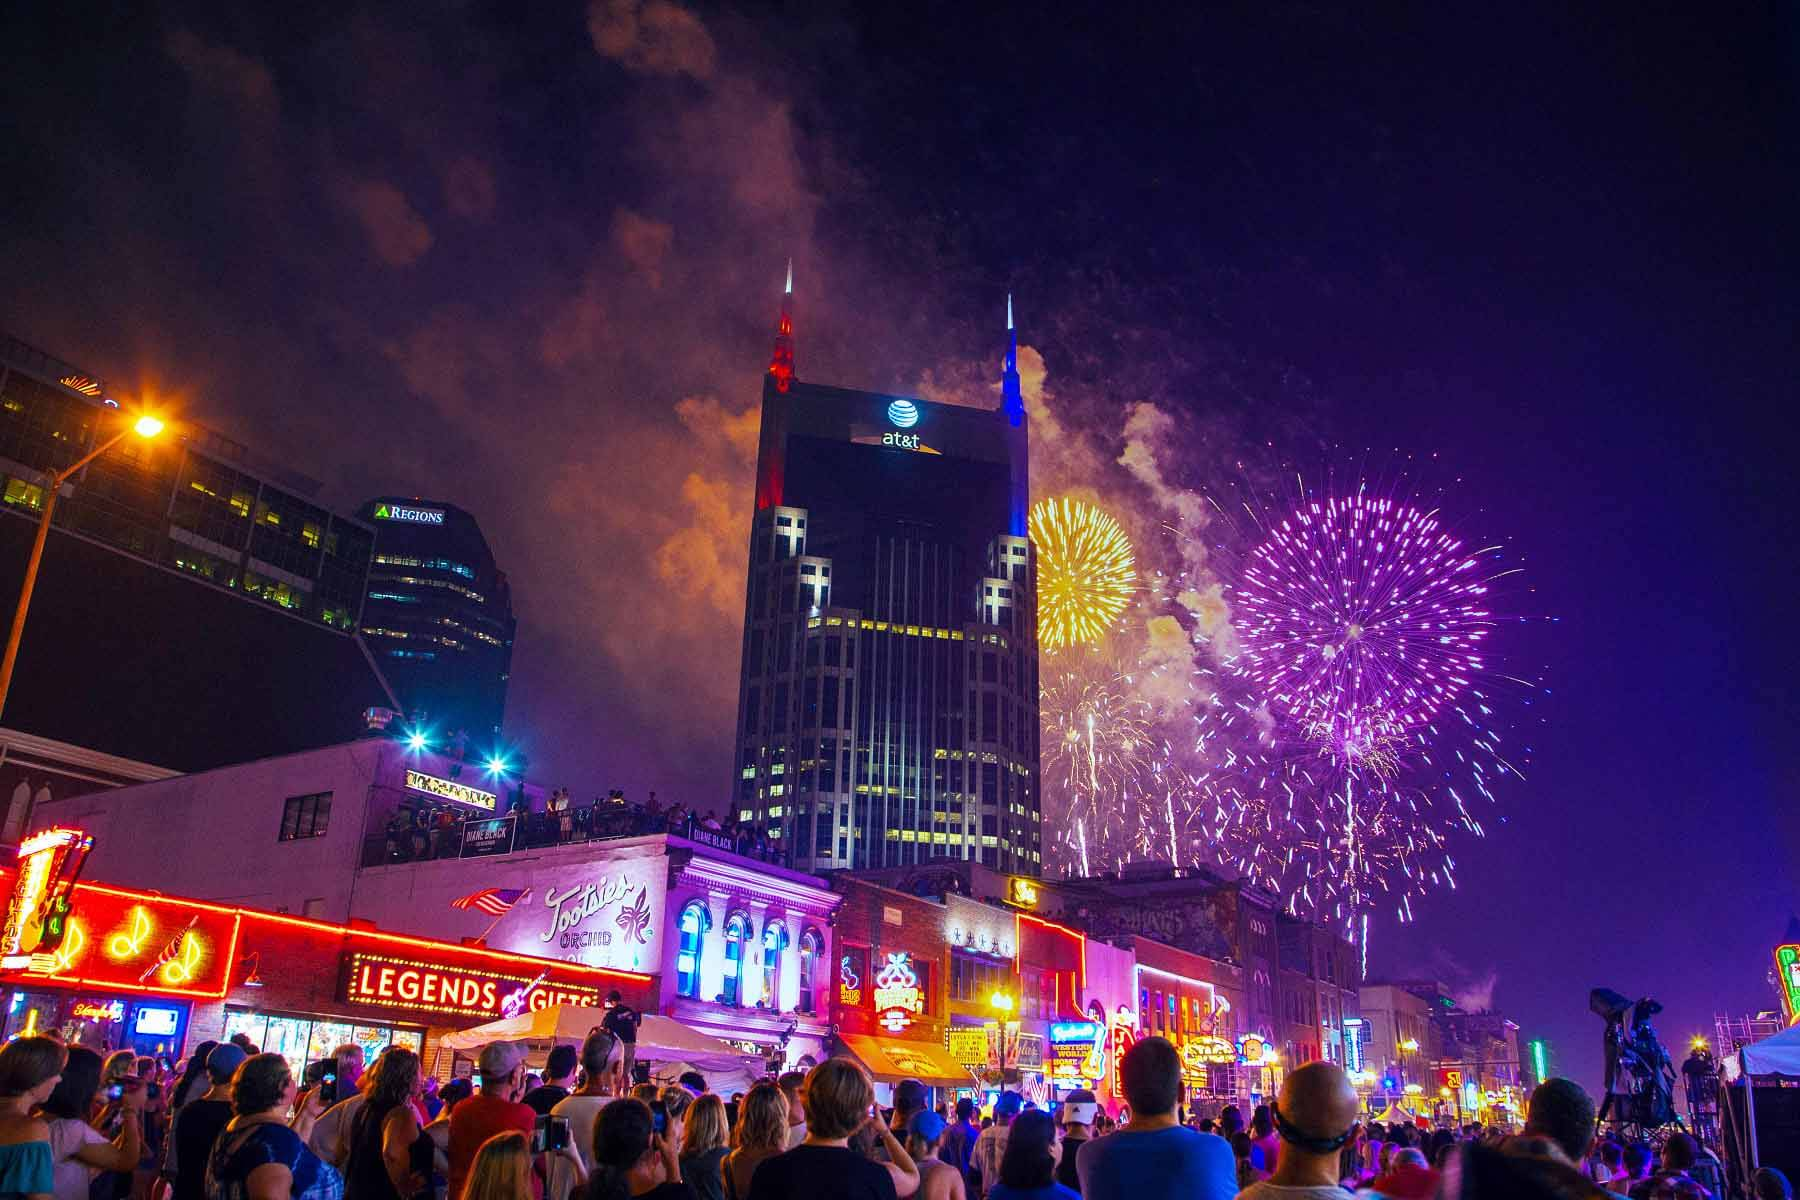 Fireworks display in downtown Nashville at annual Let Freedom Sing! event